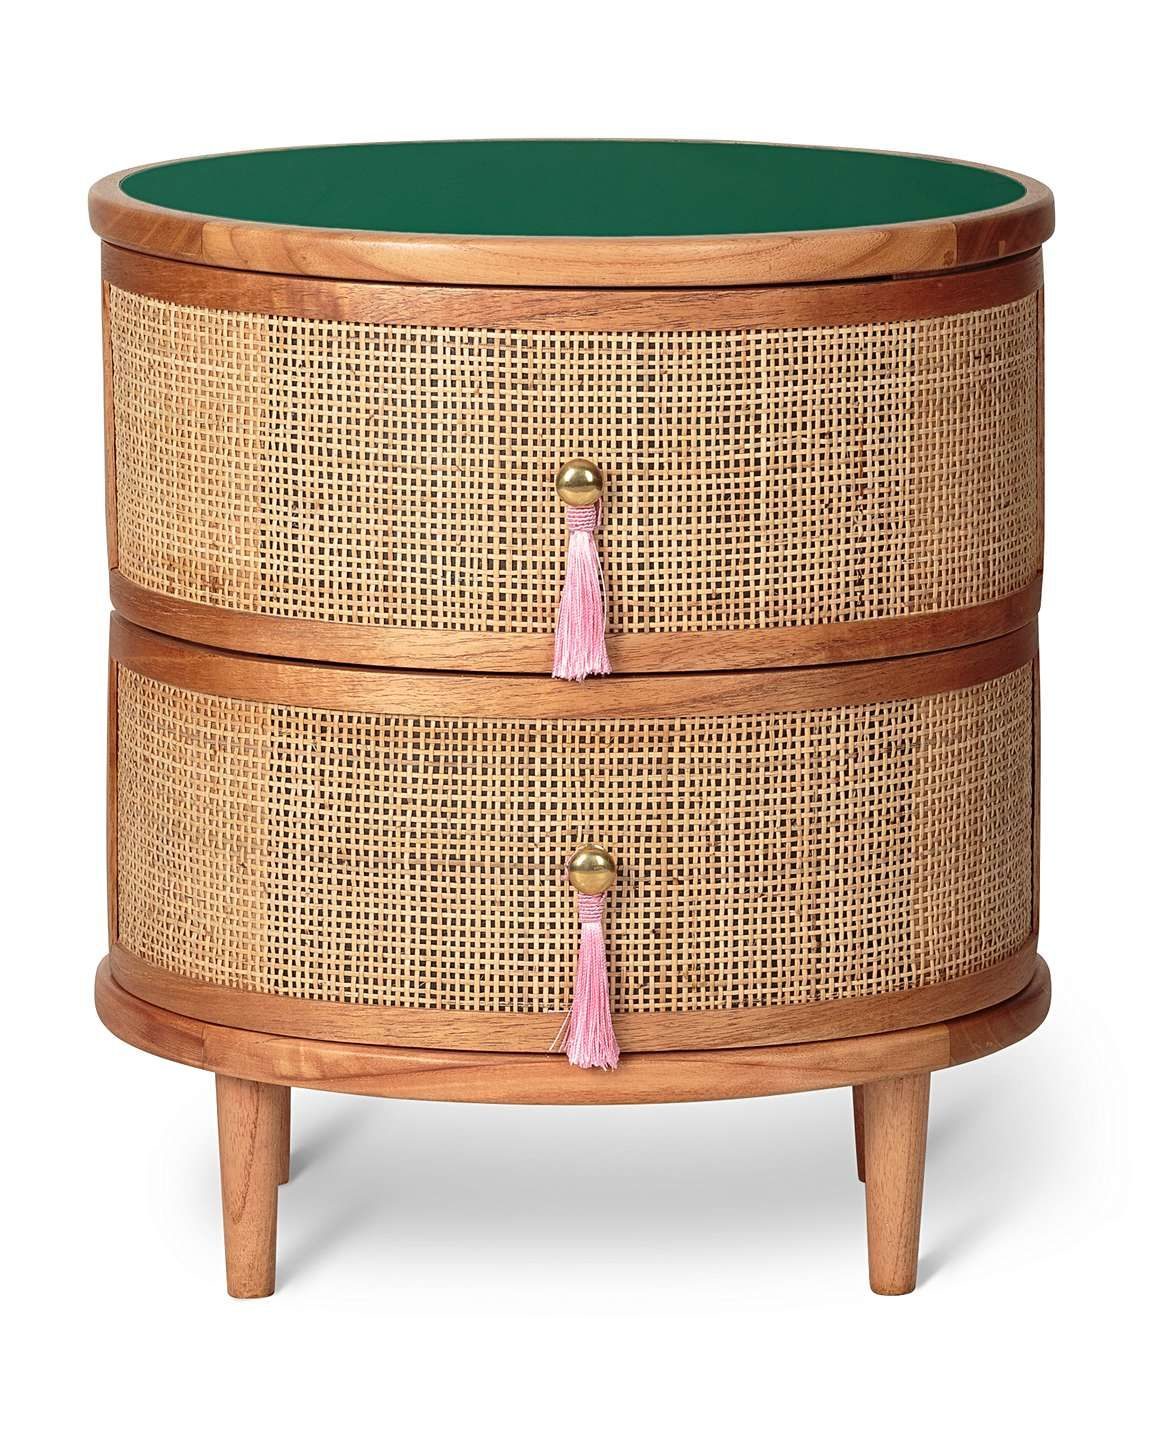 Kinship Rattan Green Bedside Table (With images) Green